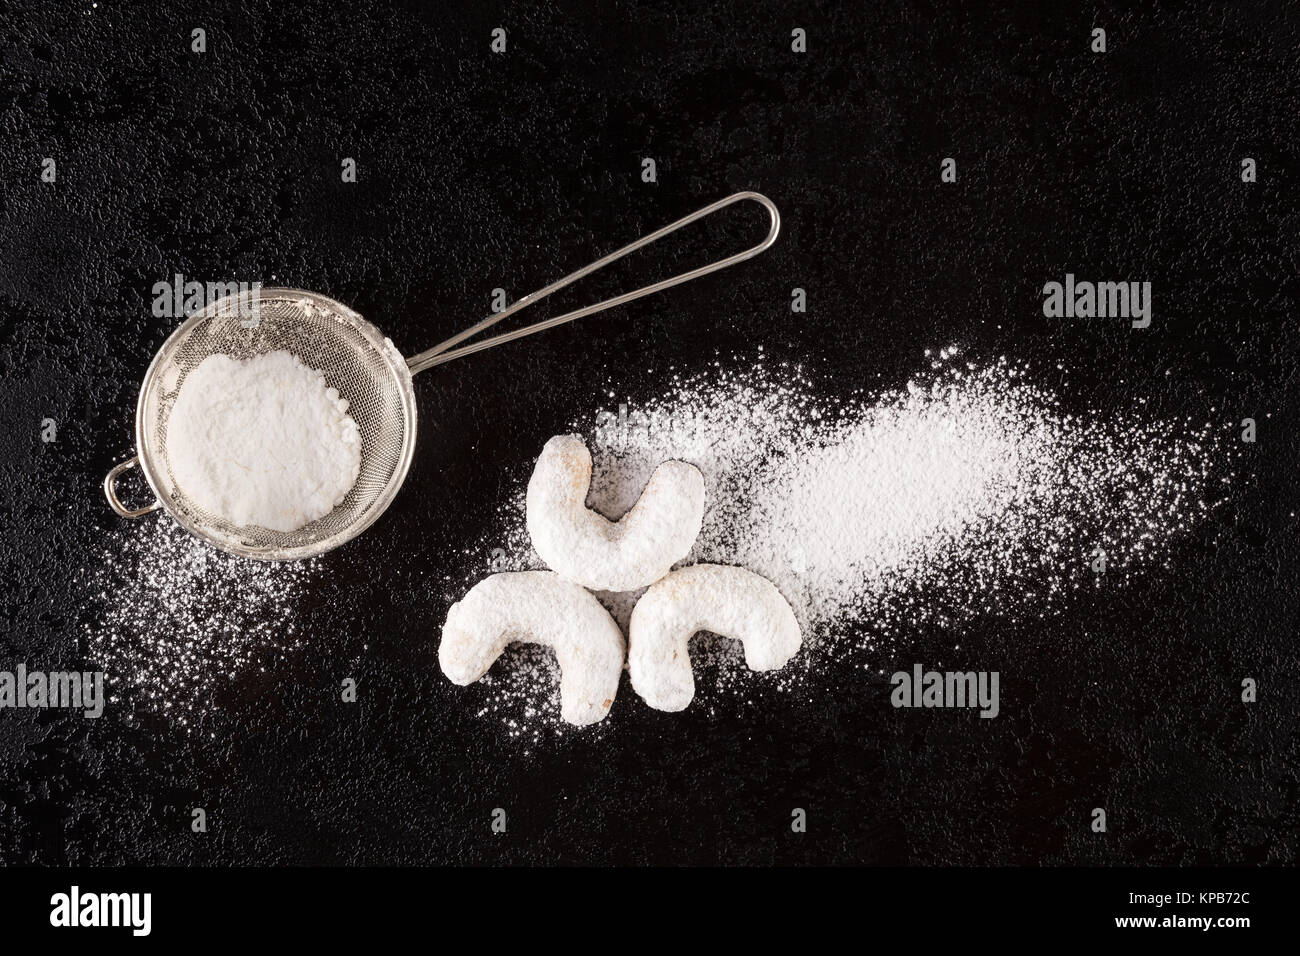 Christmas baking. Sifter with christmas vanilla breads from above.  Flat lay. - Stock Image